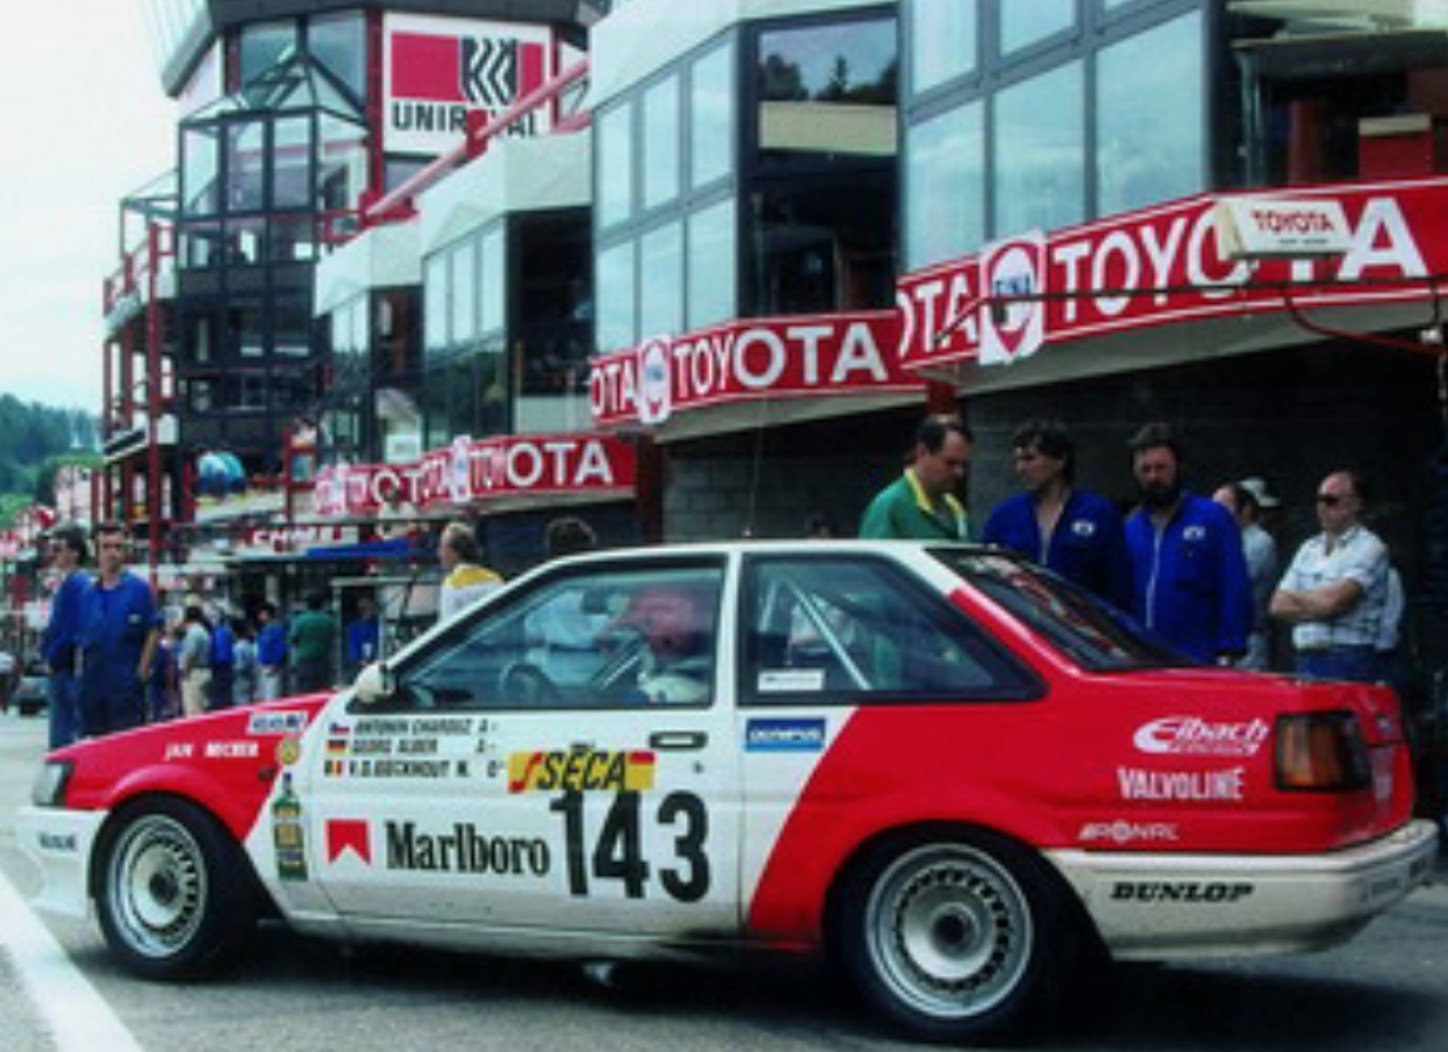 1983 Toyota Corolla GT AE86 Touring Car For Sale (picture 1 of 6)